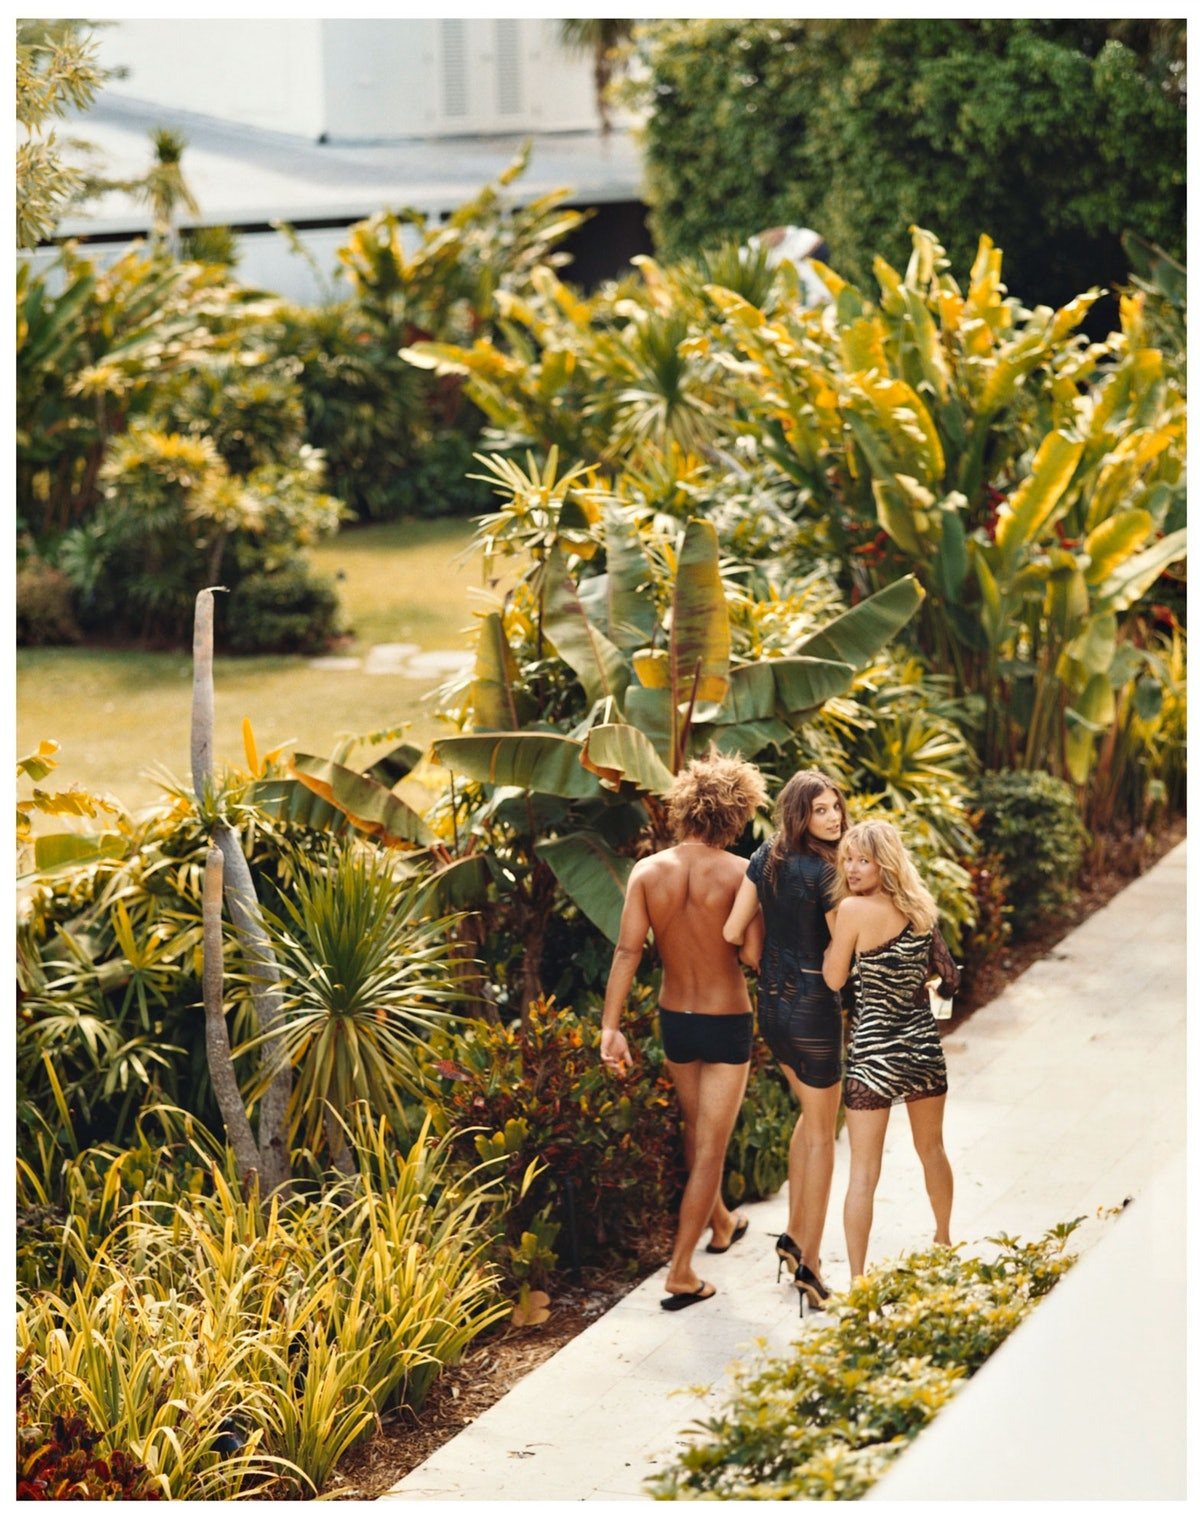 """Strolling along in July 2008's """"[Summer Camp](http://www.wmagazine.com/most-popular/3744761/ """"3744761""""),"""" shot by Bruce Weber and styled by Alex White."""